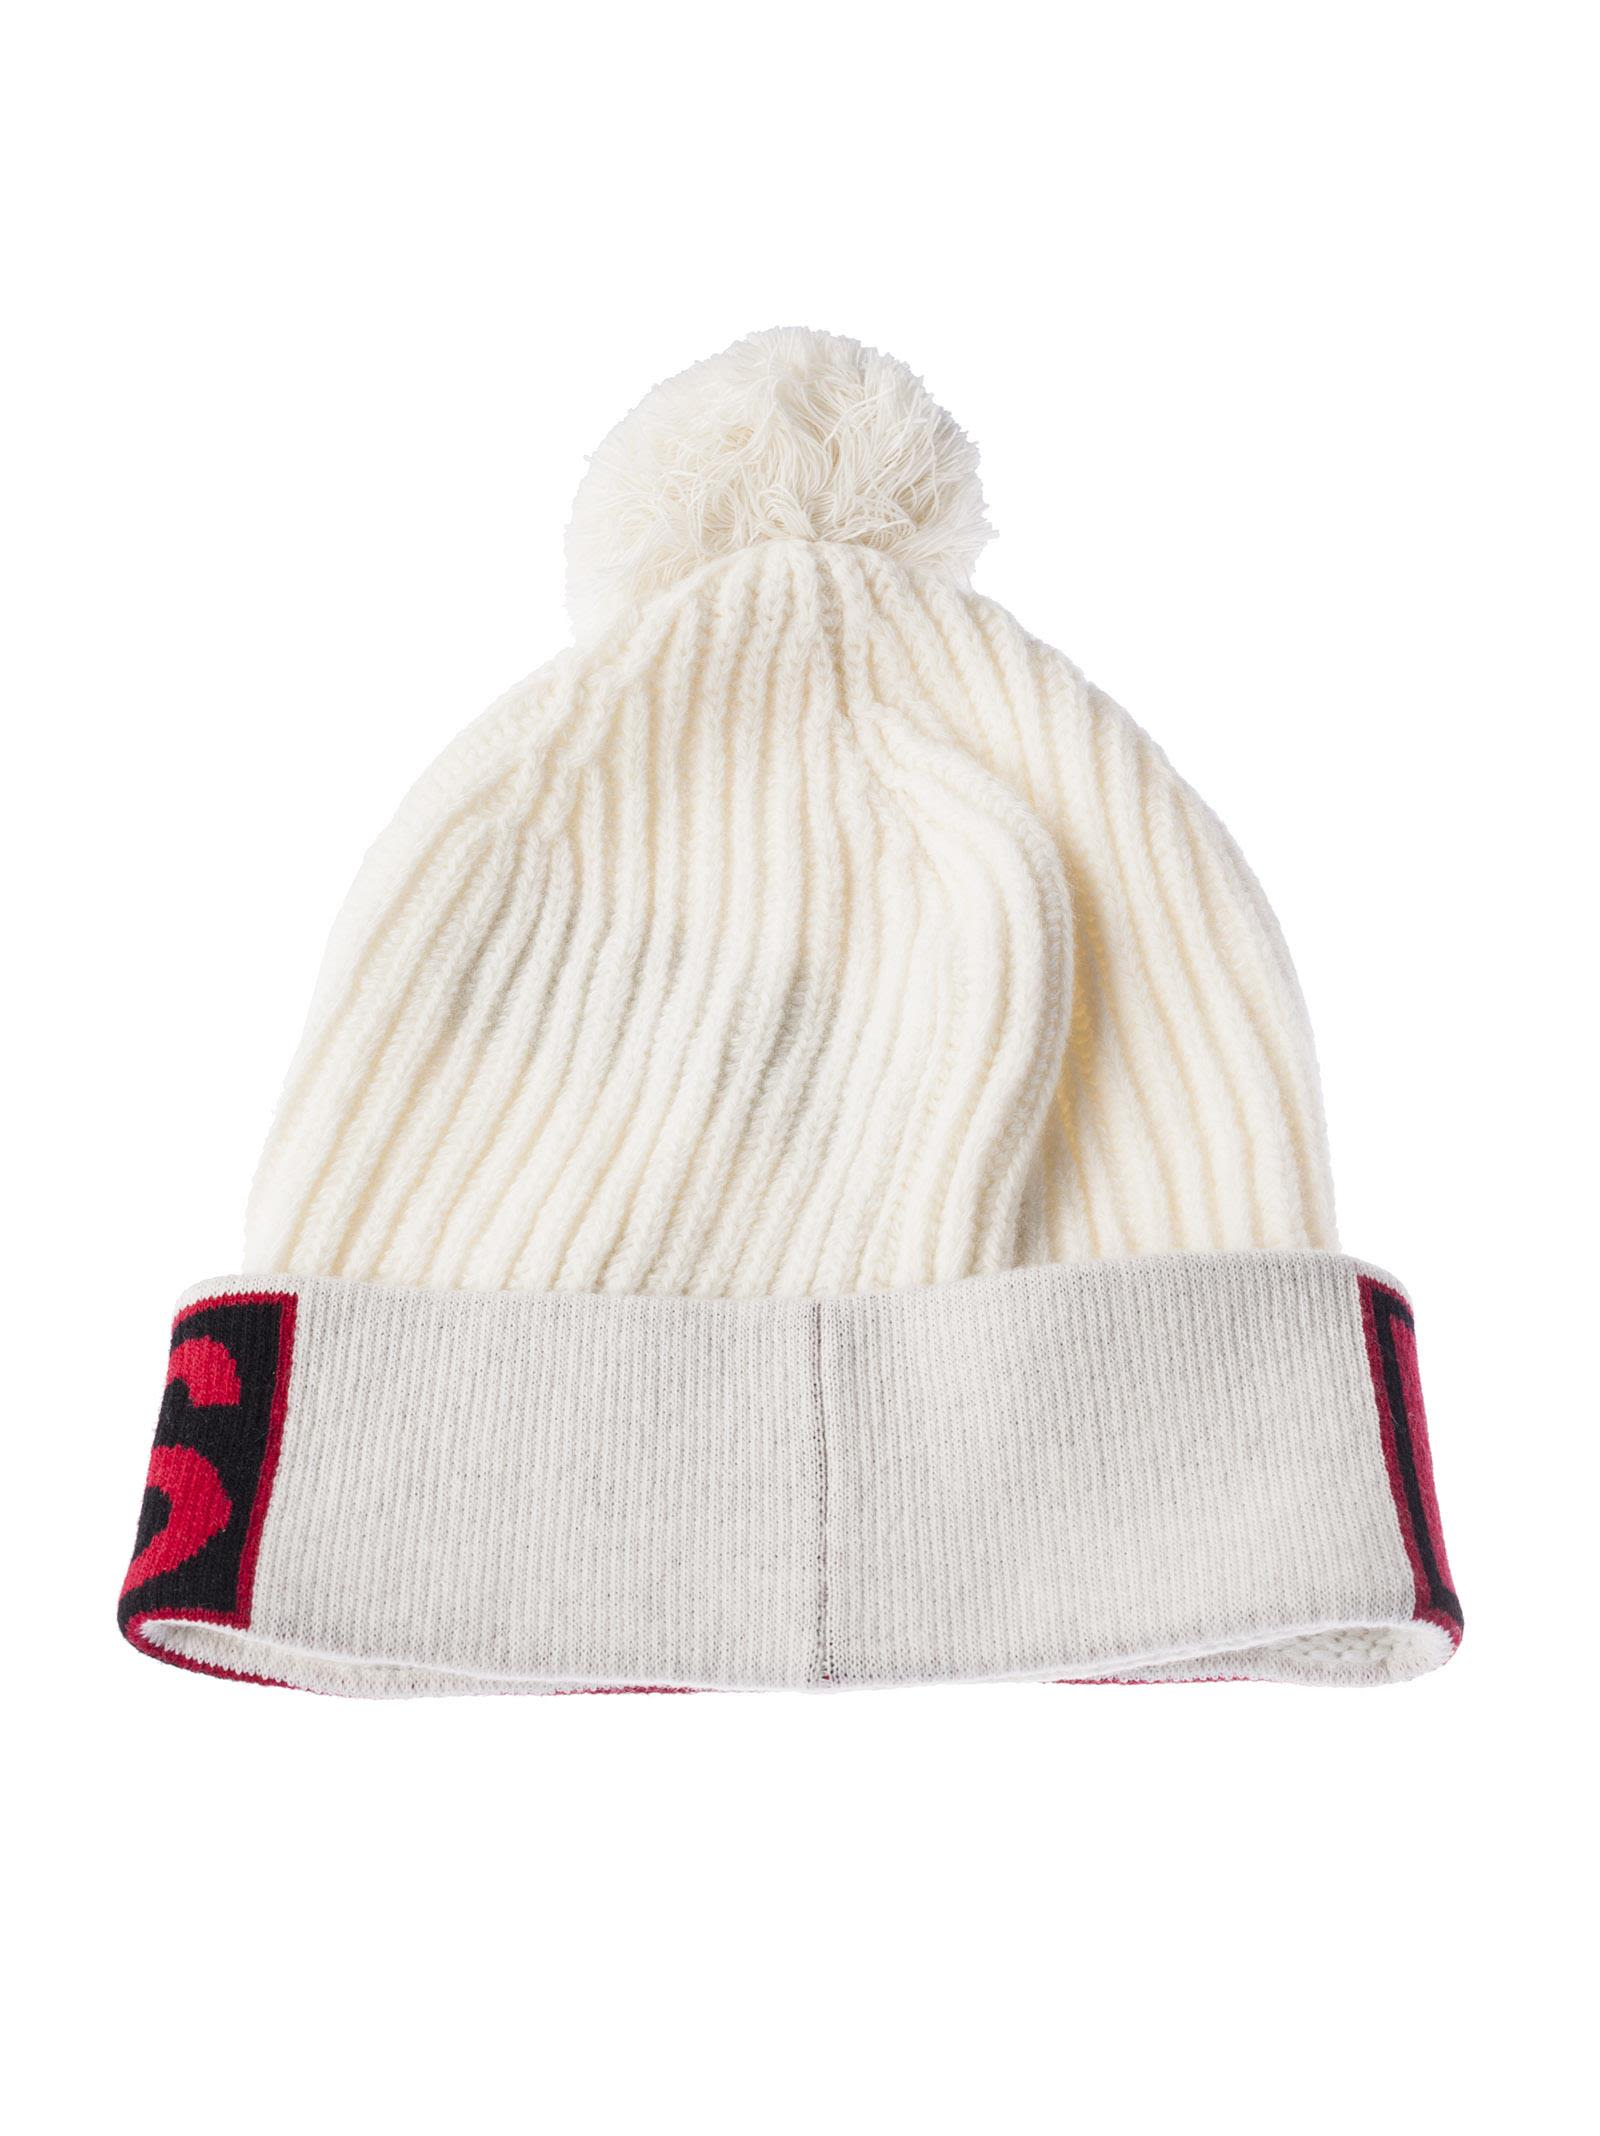 Princess bobble hat - White Dolce & Gabbana